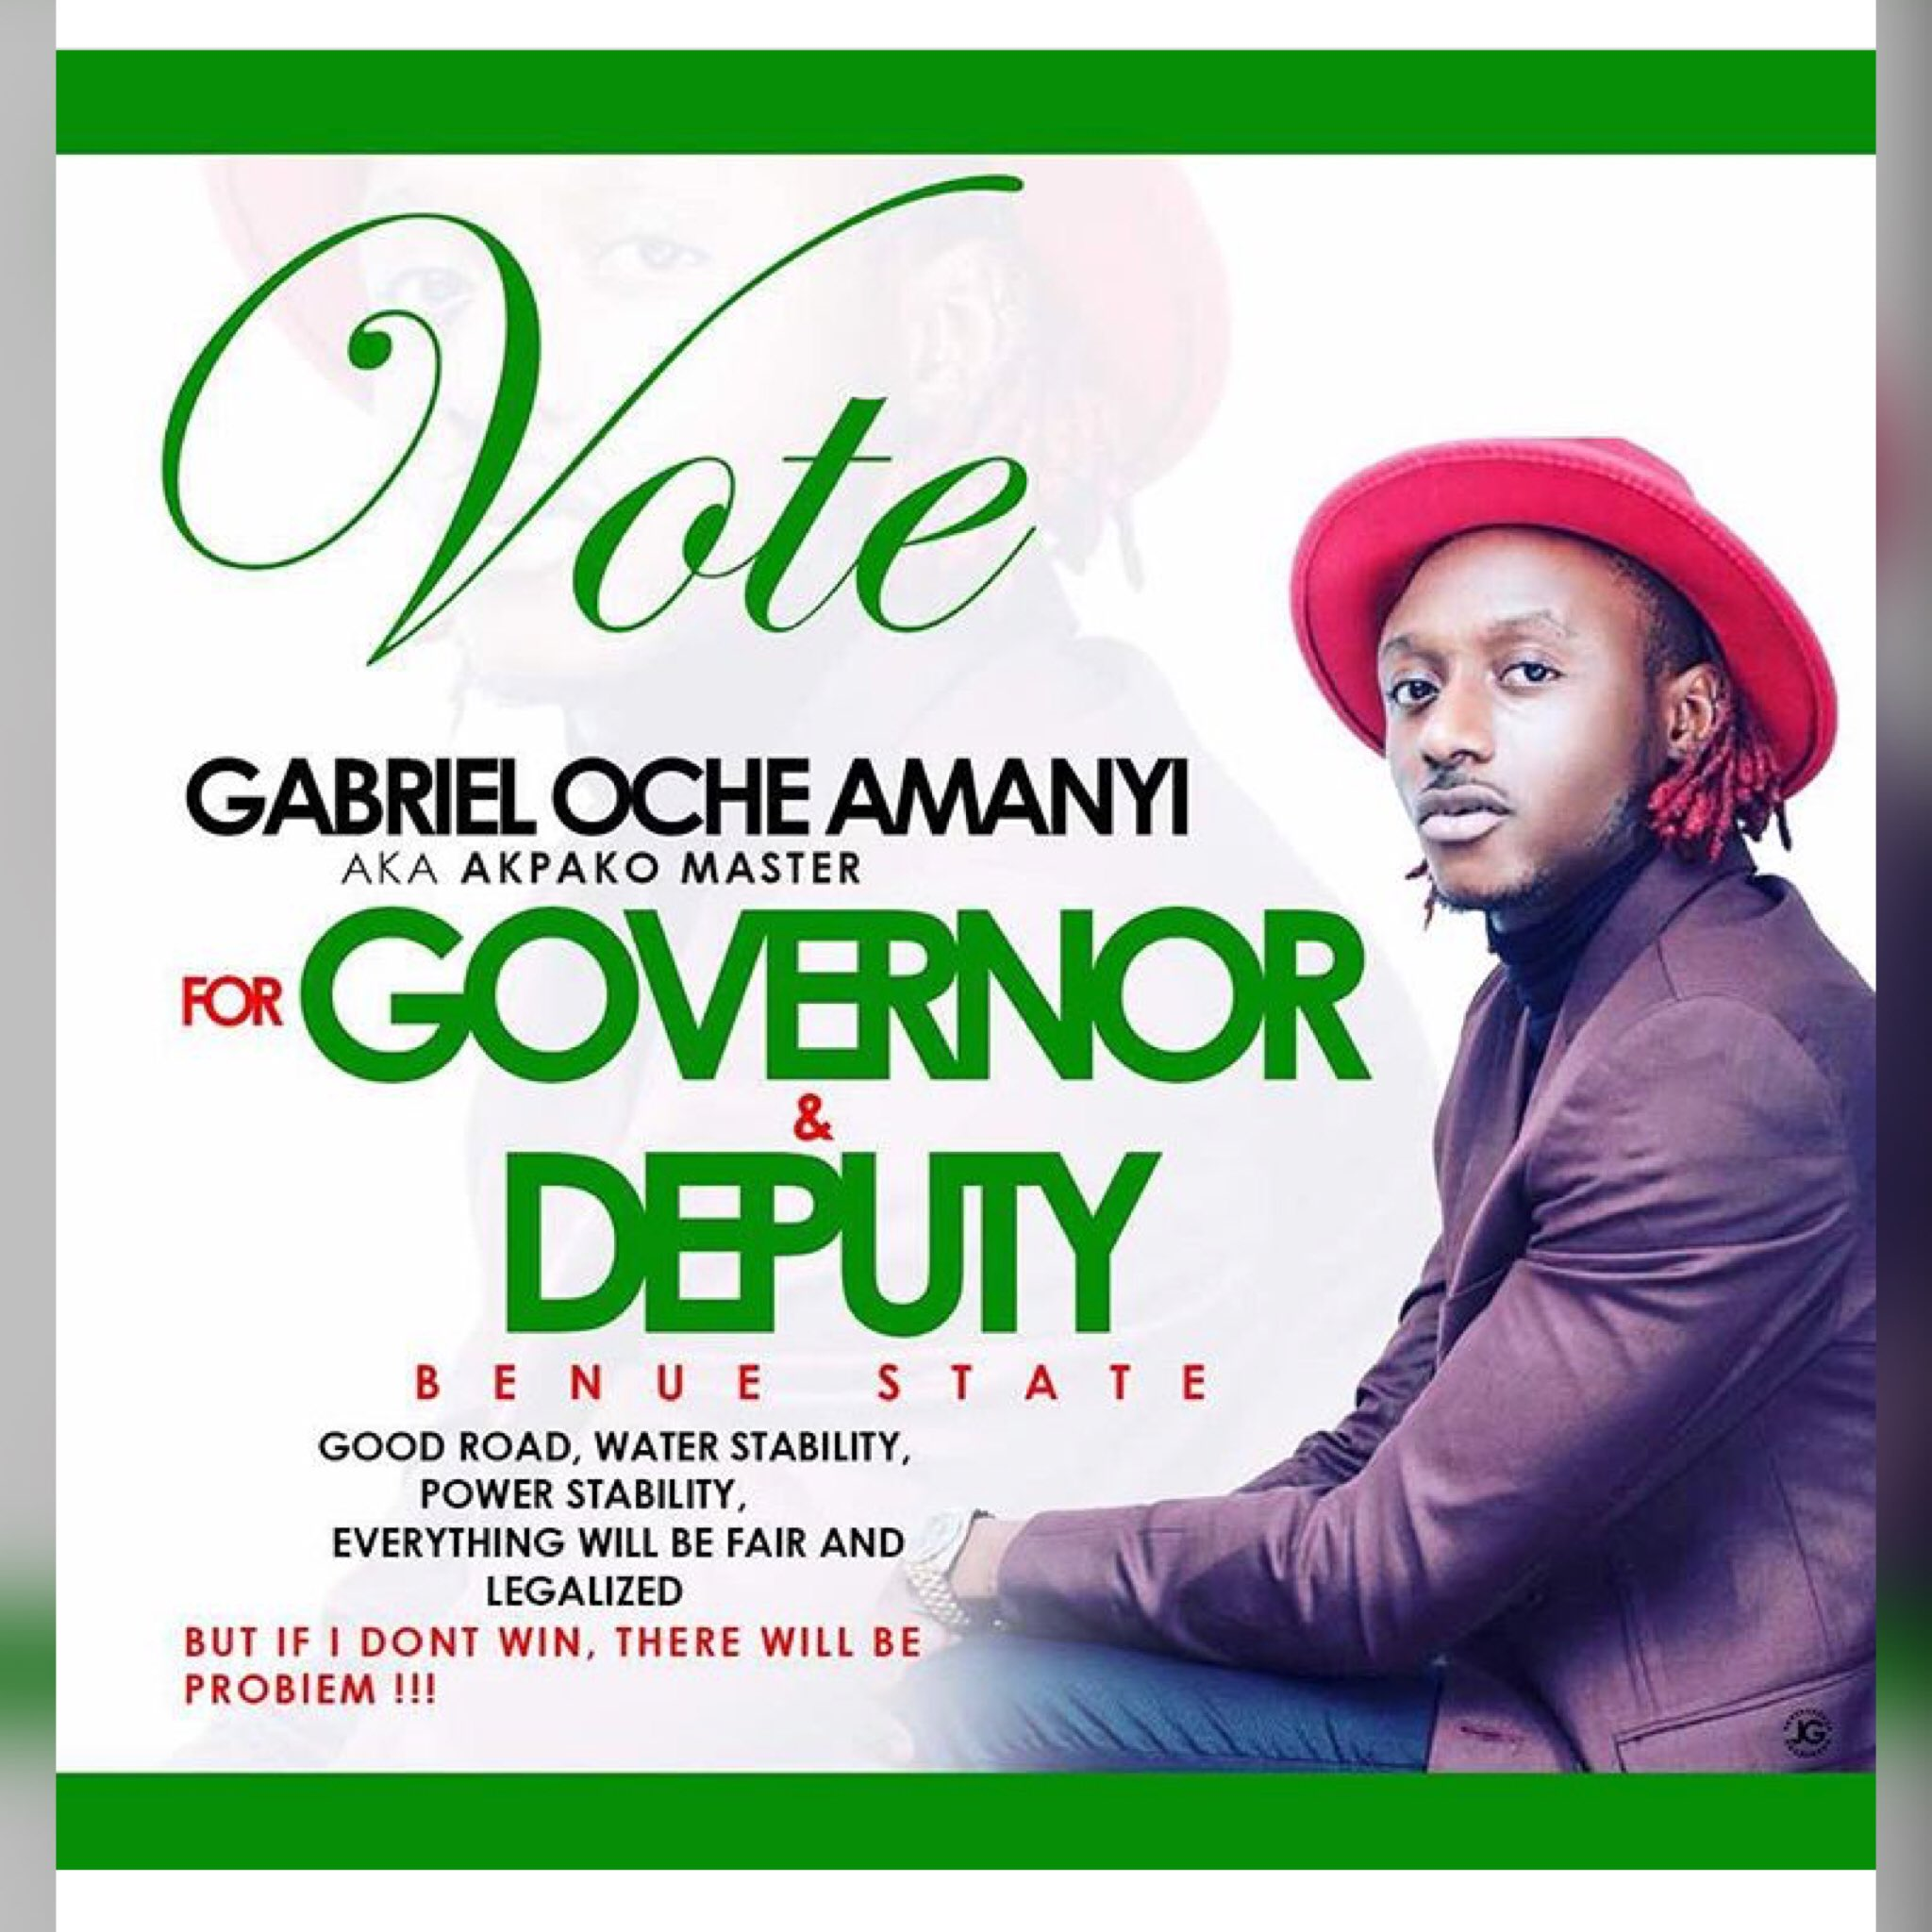 Terry G is currently running for both Gov. & Deputy for Benue State